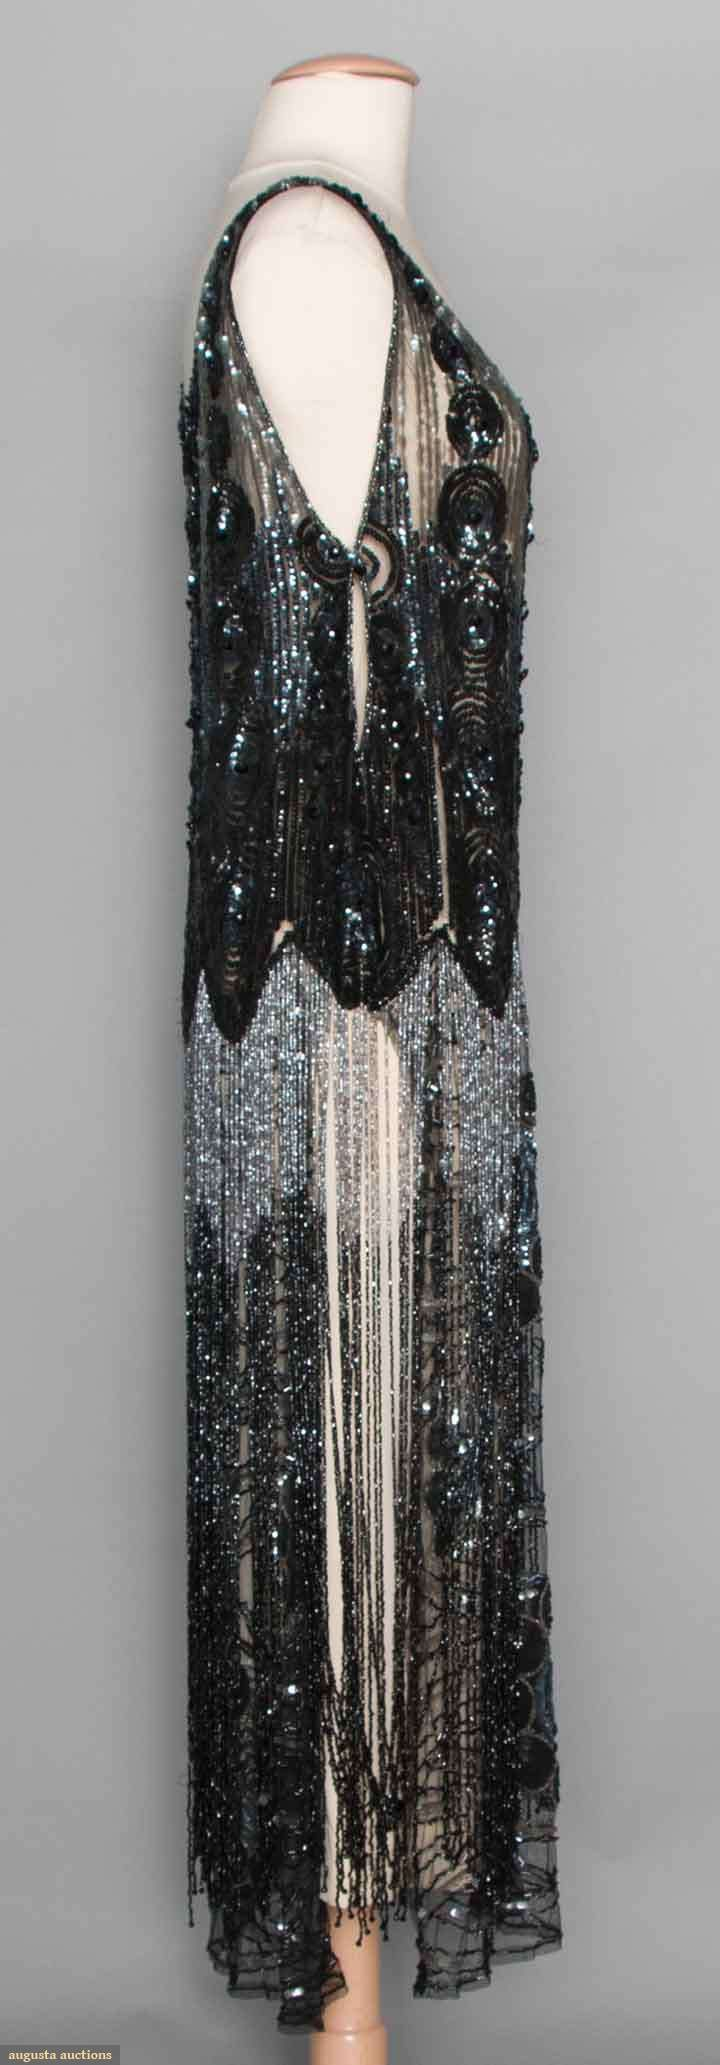 "SEQUINED & BEADED TABARD, c. 1925. Black net, shoulder to hip area covered w/ black & gunmetal sequins in dense circular patterns, stylized branch & blossom pattern below hip to hem is partially concealed by 20+"" long beaded fringe. Sideway"